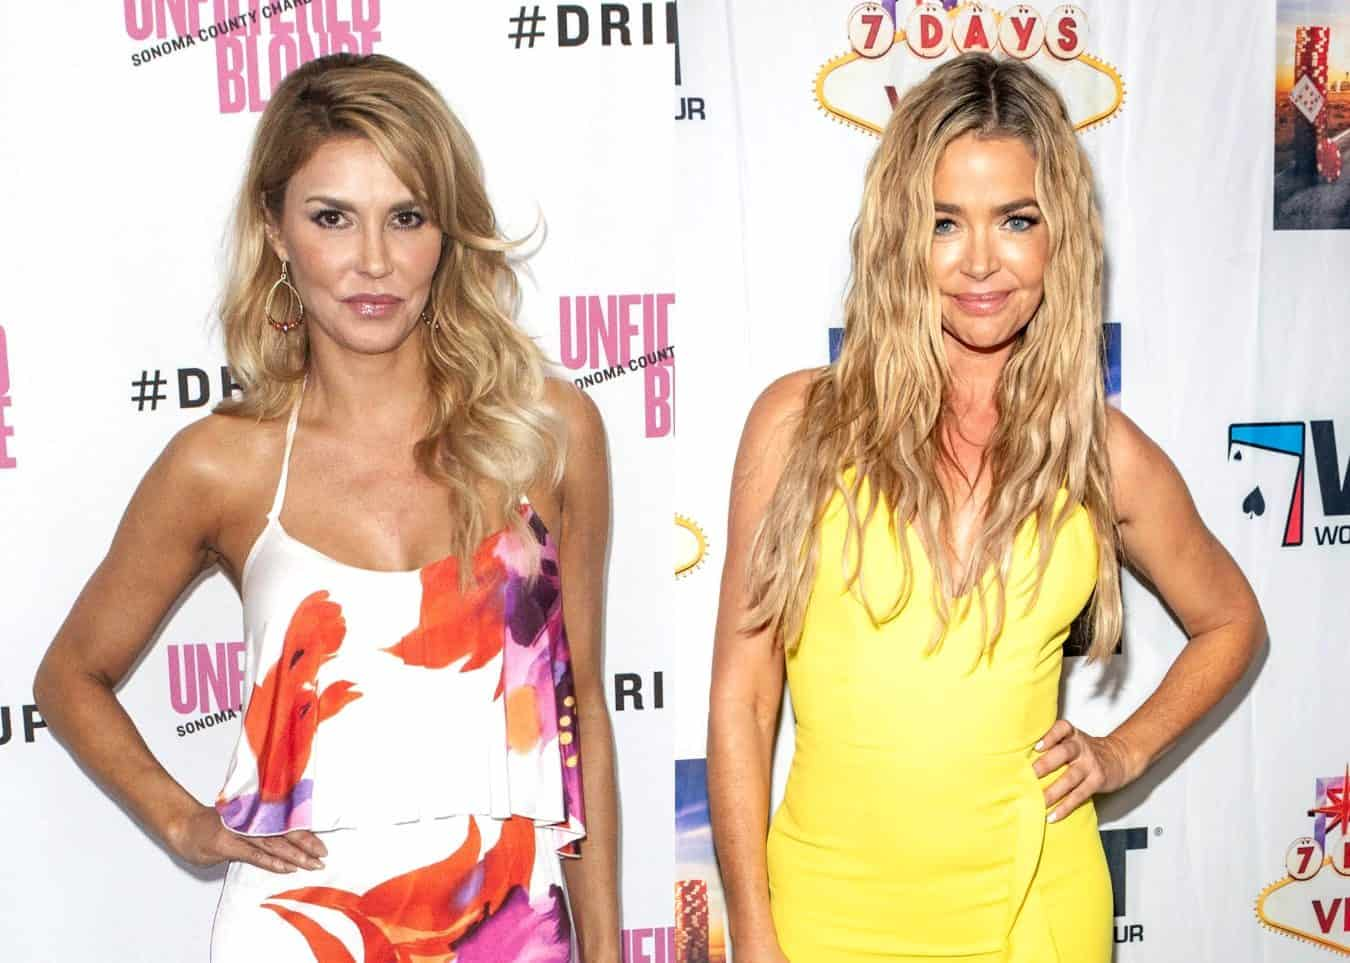 RHOBH's Brandi Glanville Confirms Relationship With Denise Richards and Slams Denise for Failing to Be Truthful and Honest During Filming, Plus When Will Their Drama Begin Airing?